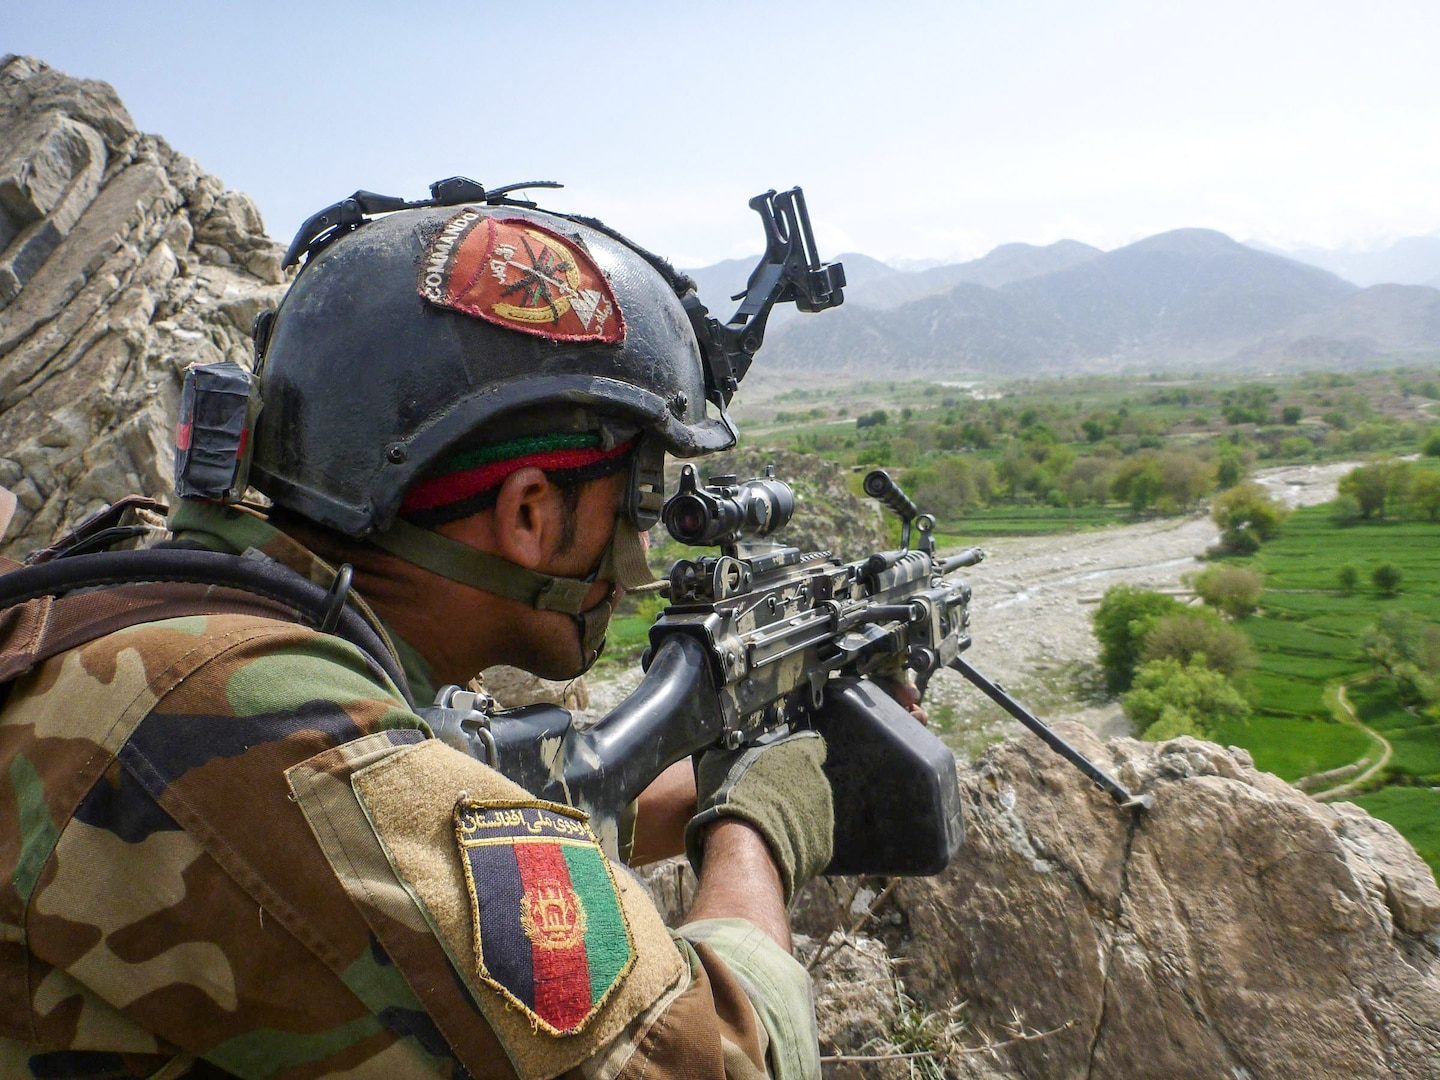 In the last 24 hours Afghan Special Security Forces killed twelve Daesh fighters in Nangarhar, and a Taliban commander in Shahid-E Hasa, Uruzgan.  In addition, they also arrested one Haqqani insurgent in Paghman, Kabul. ASSF continues to disrupt and degrade insurgent operations, diminishing their freedom-of-movement and improving security for  the citizens of Afghanistan.